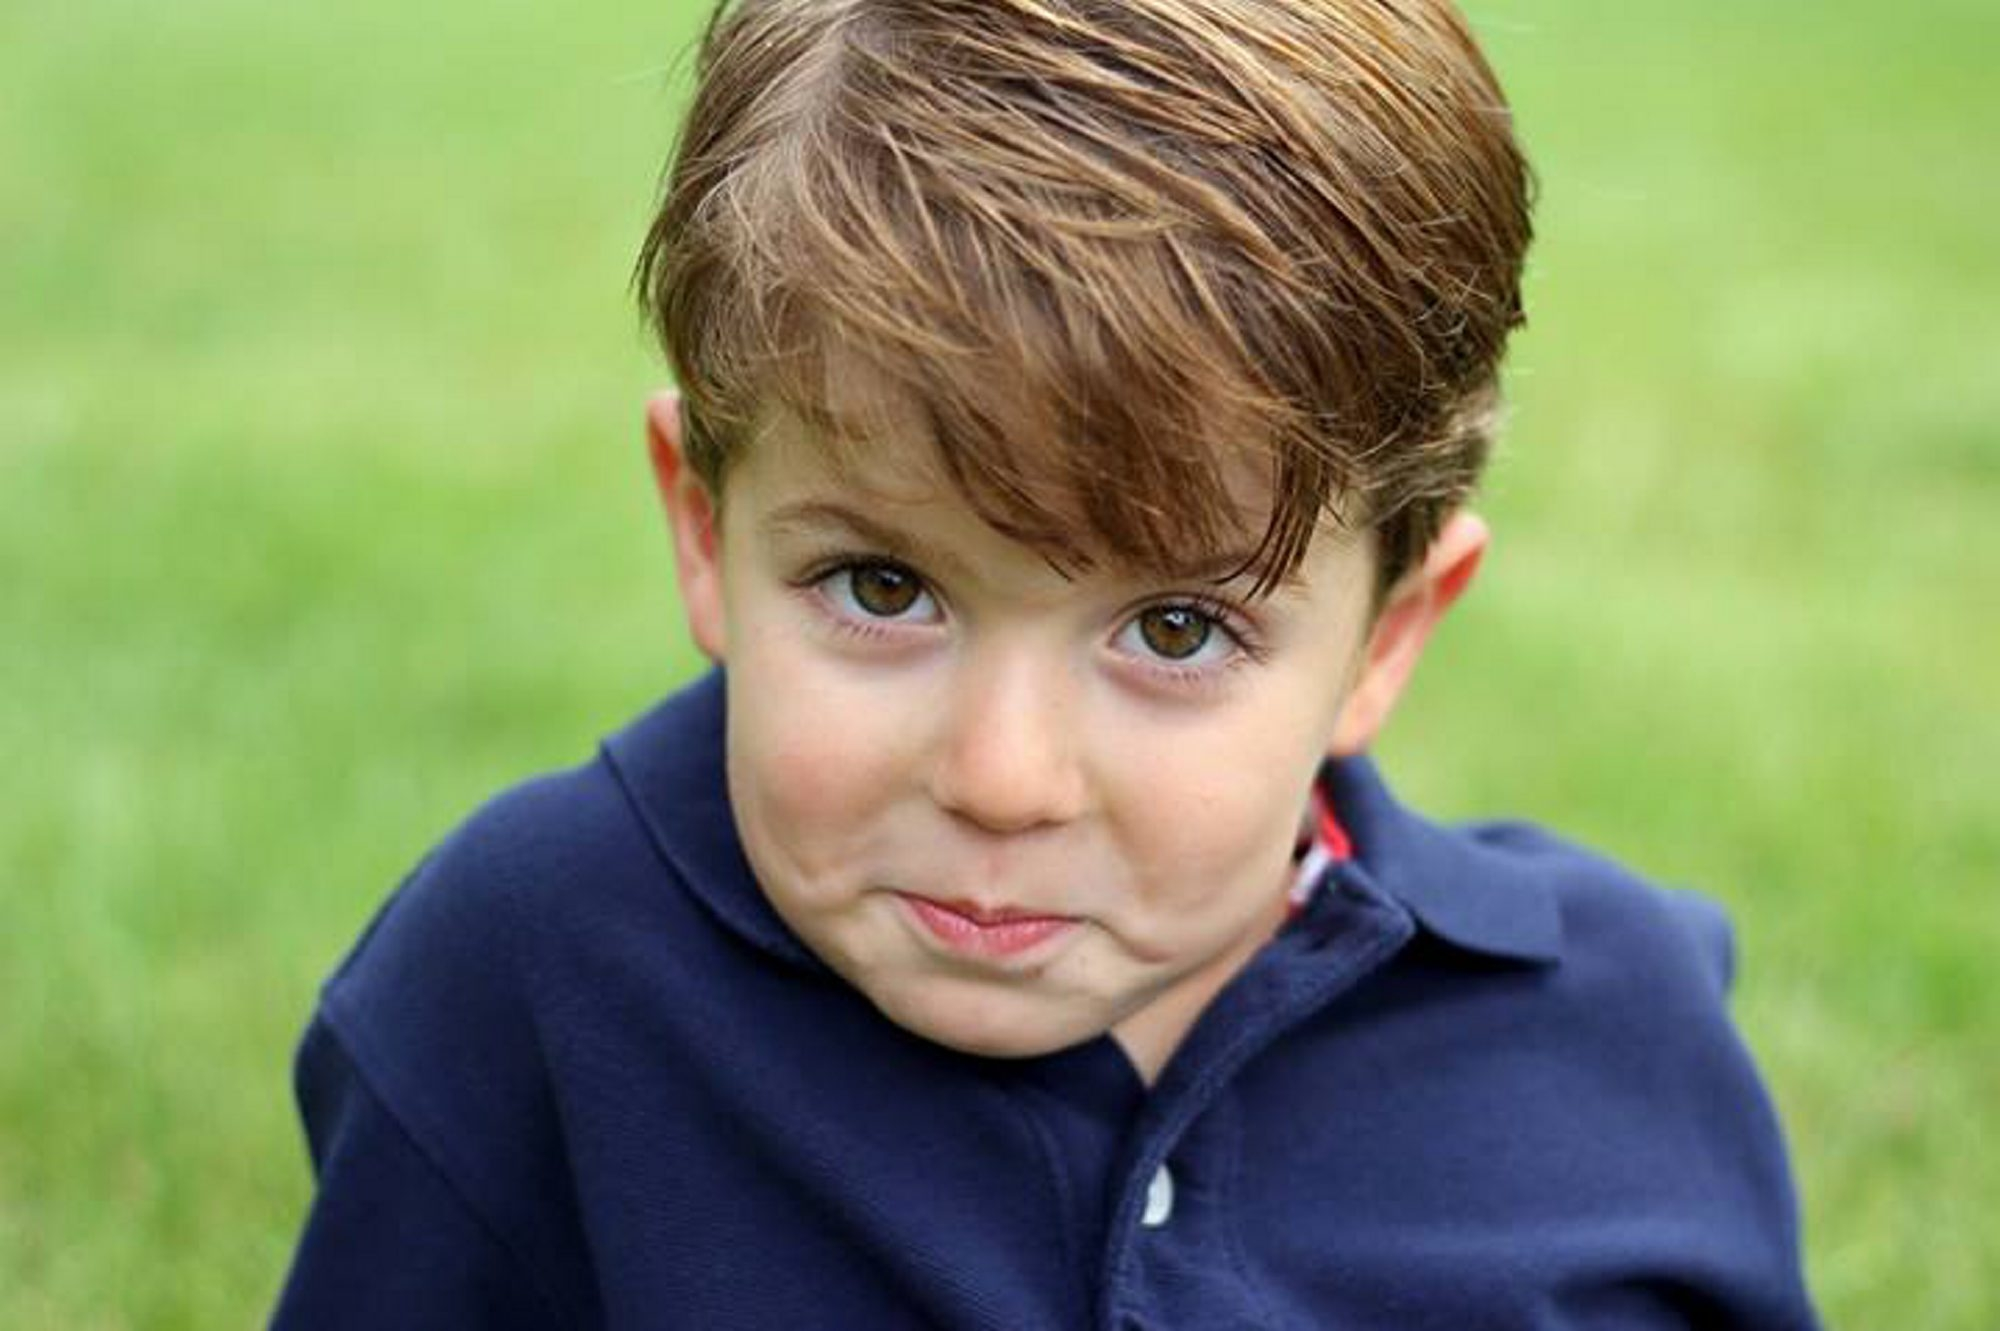 Ben Sauer, 4, began having headaches in January. The source of pain was found to be a pear-sized tumor.